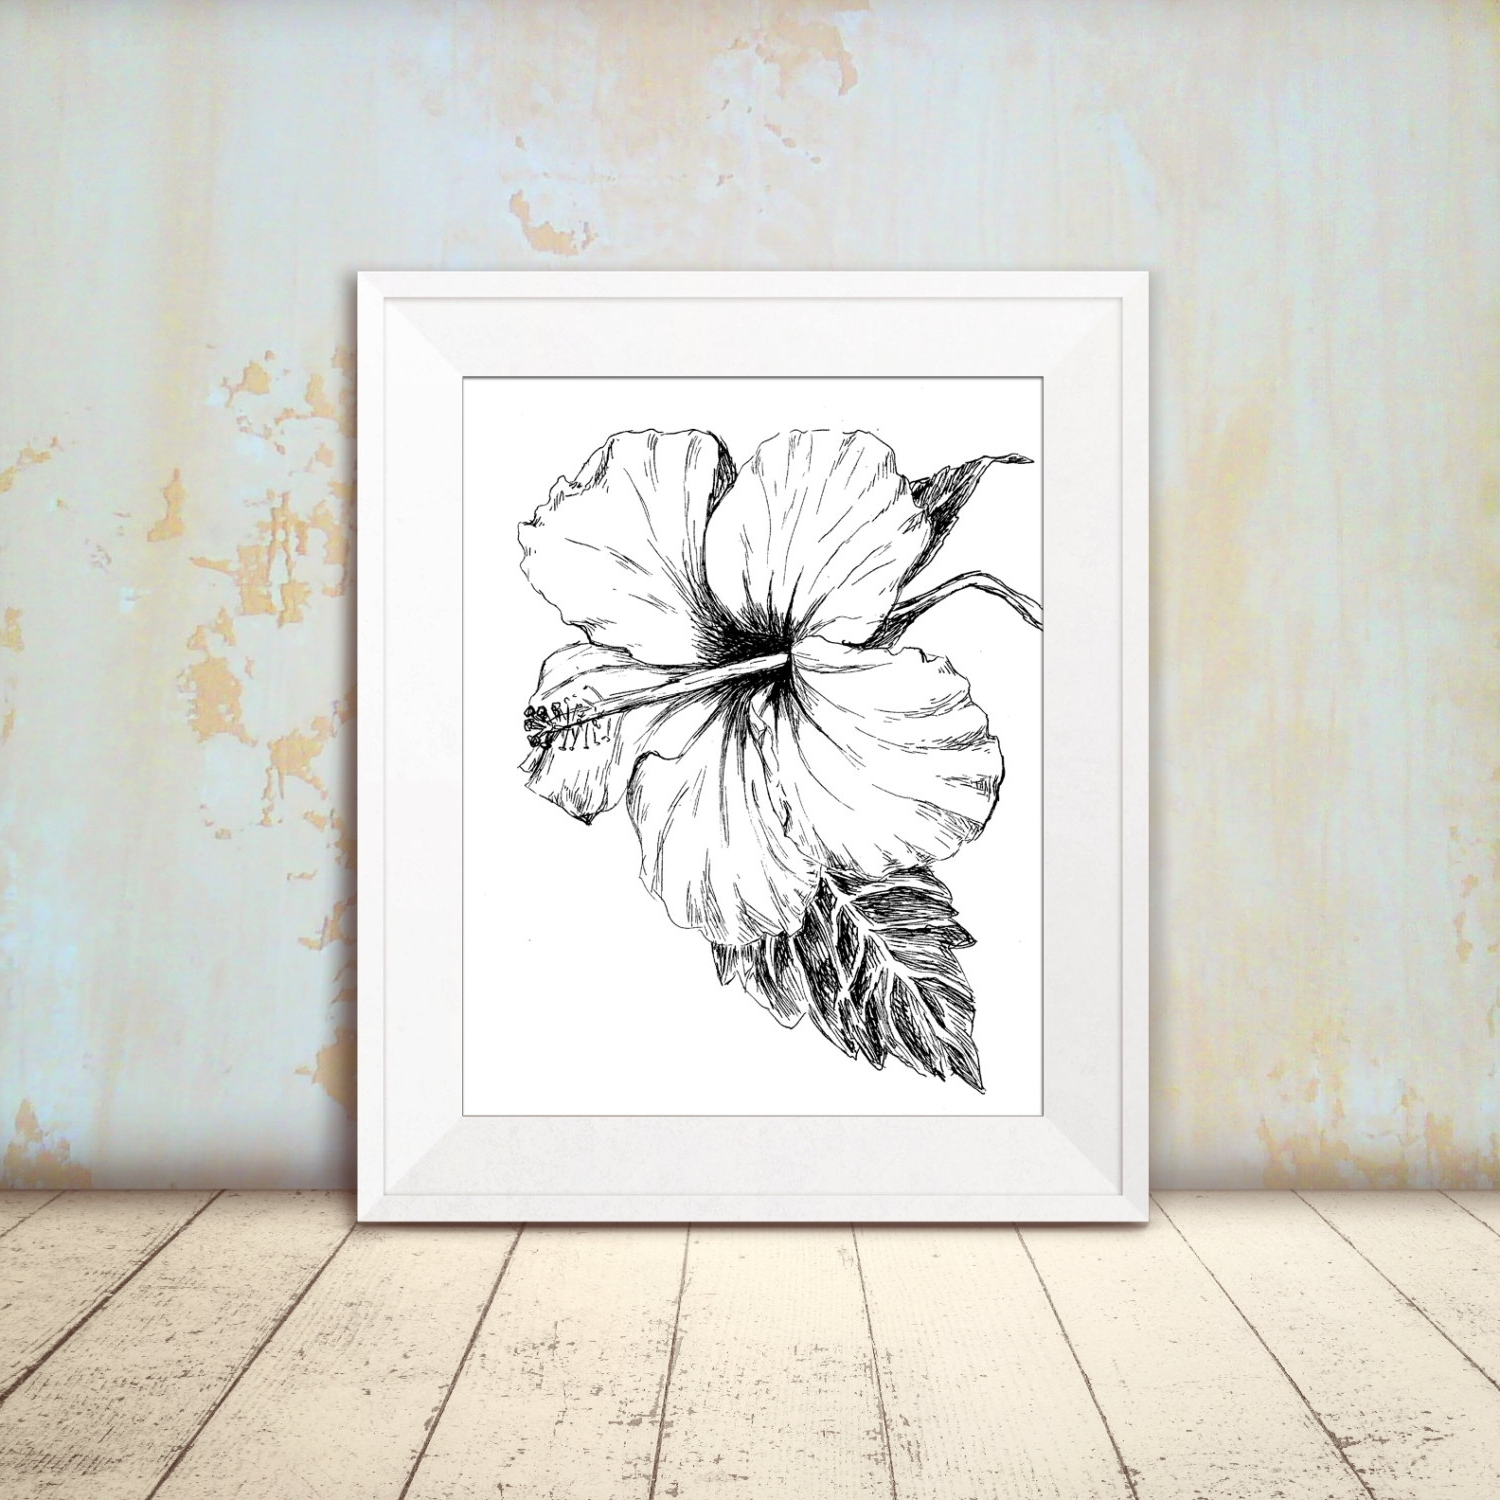 Glamorous Wall Art Com With Decorating Sketches ~ Arttogallery Throughout Most Current Glamorous Wall Art (View 5 of 15)